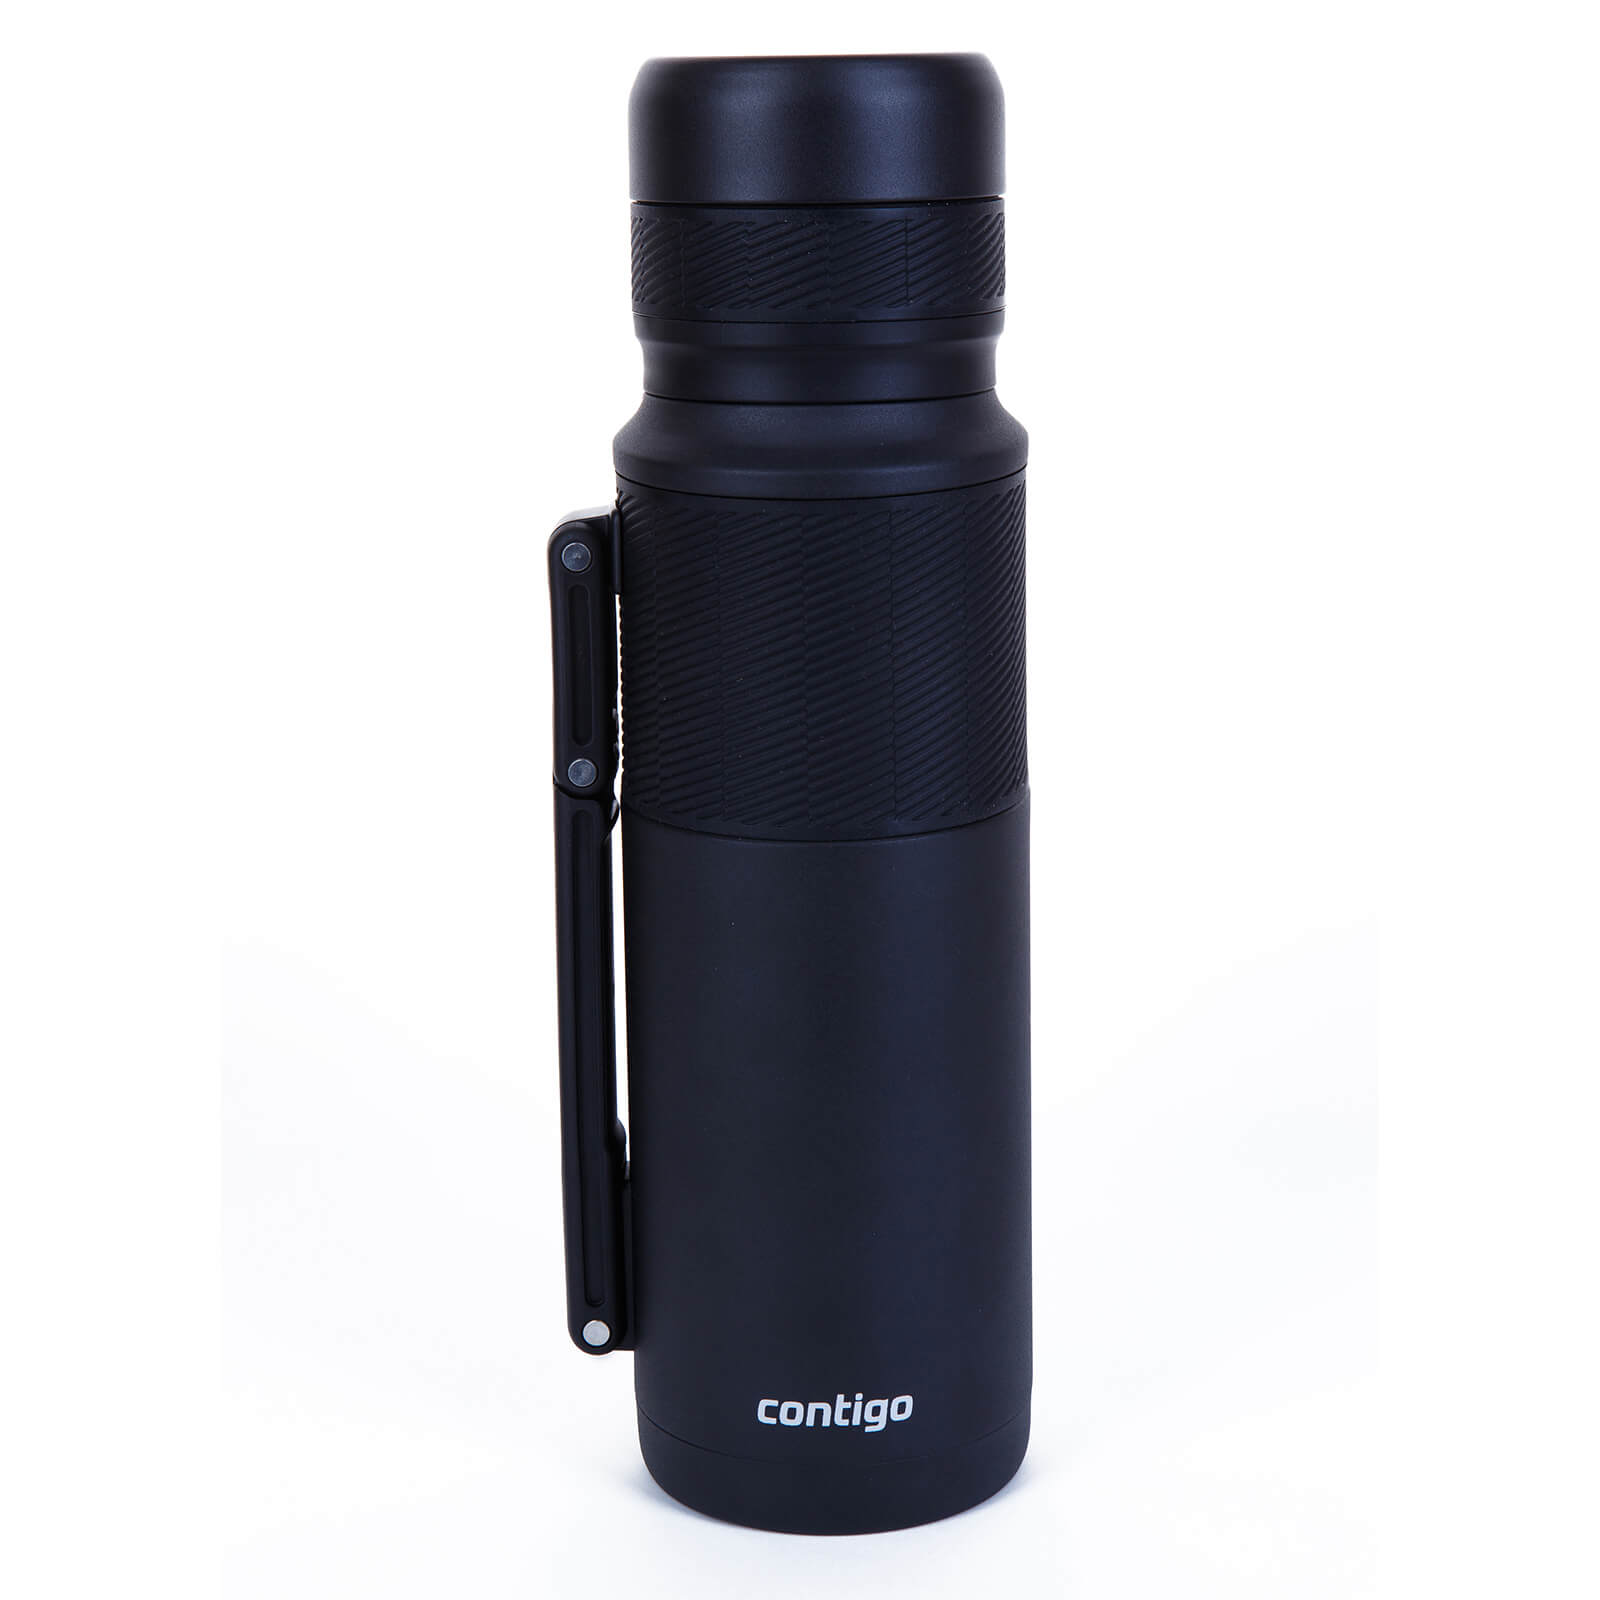 Contigo Thermal Bottle (1200ml) - Matt Black